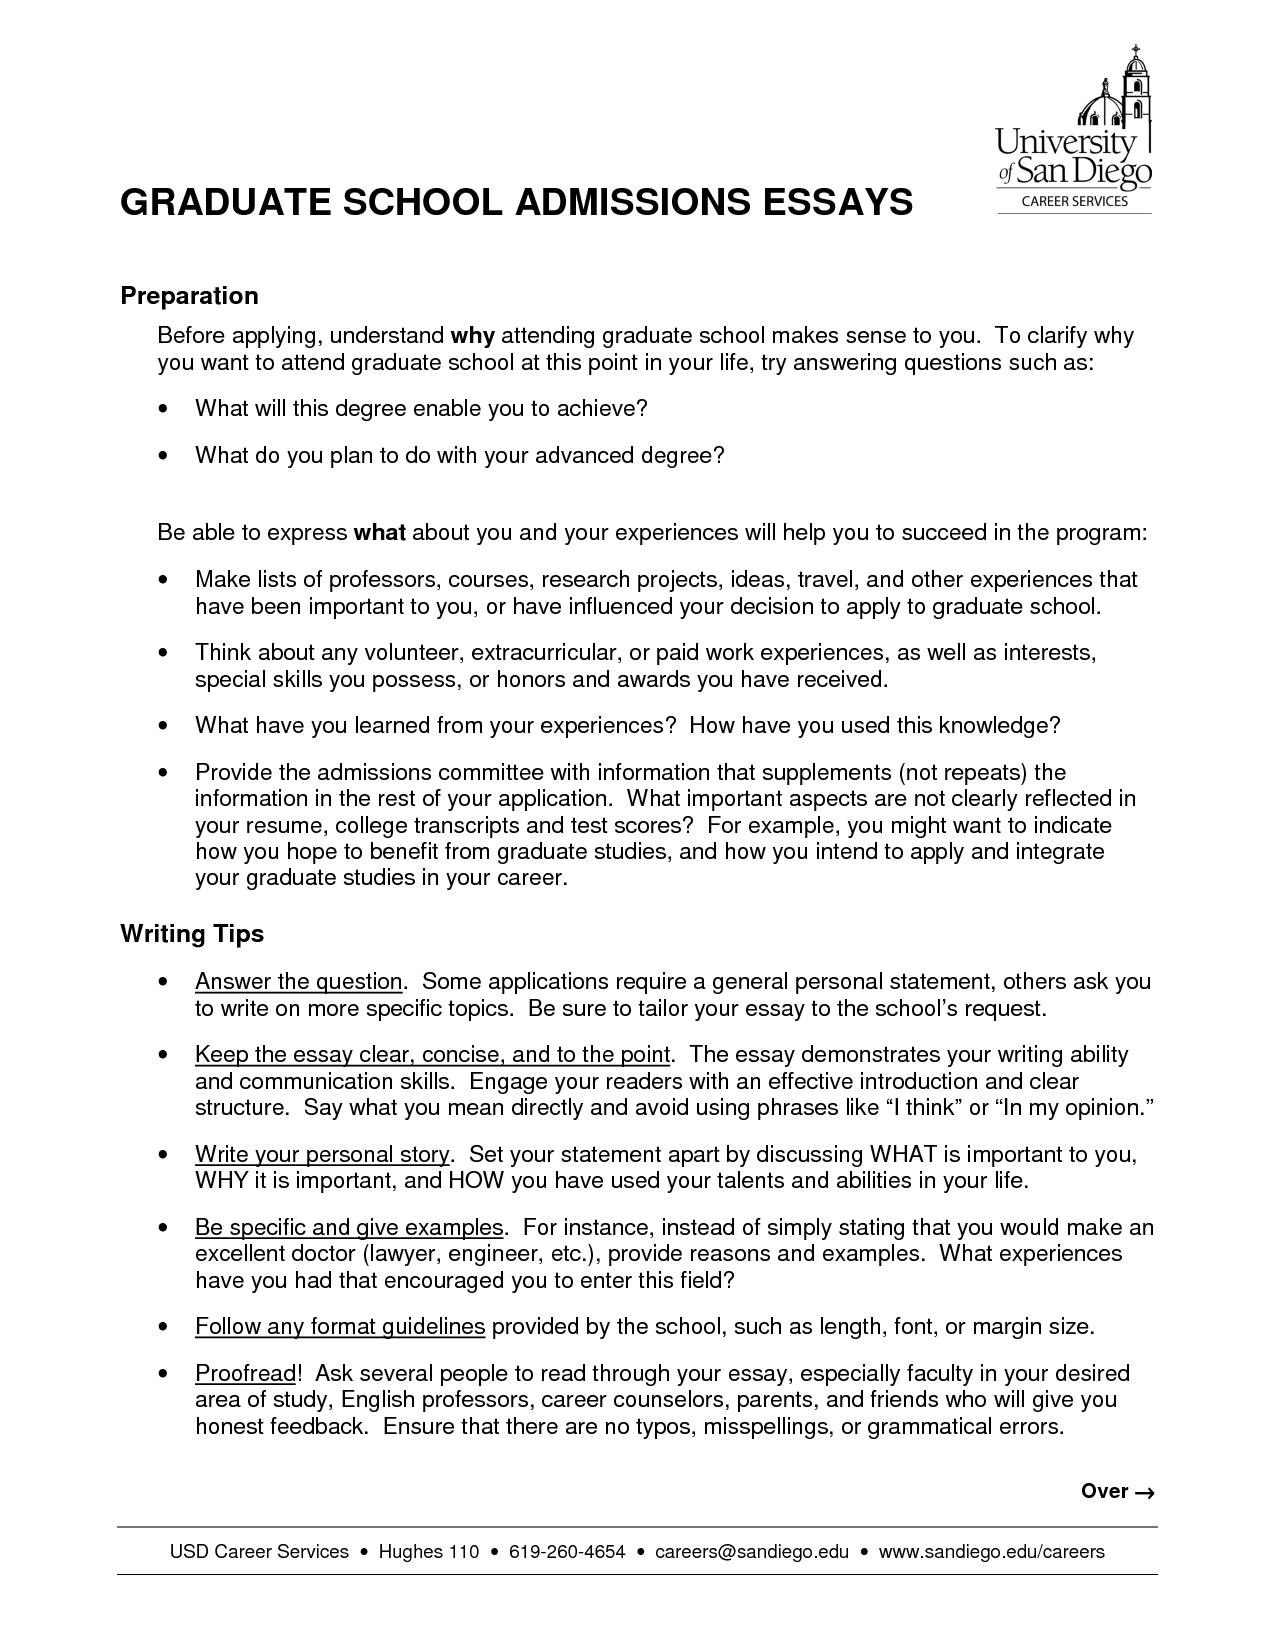 Graduate school admissions essay psychology